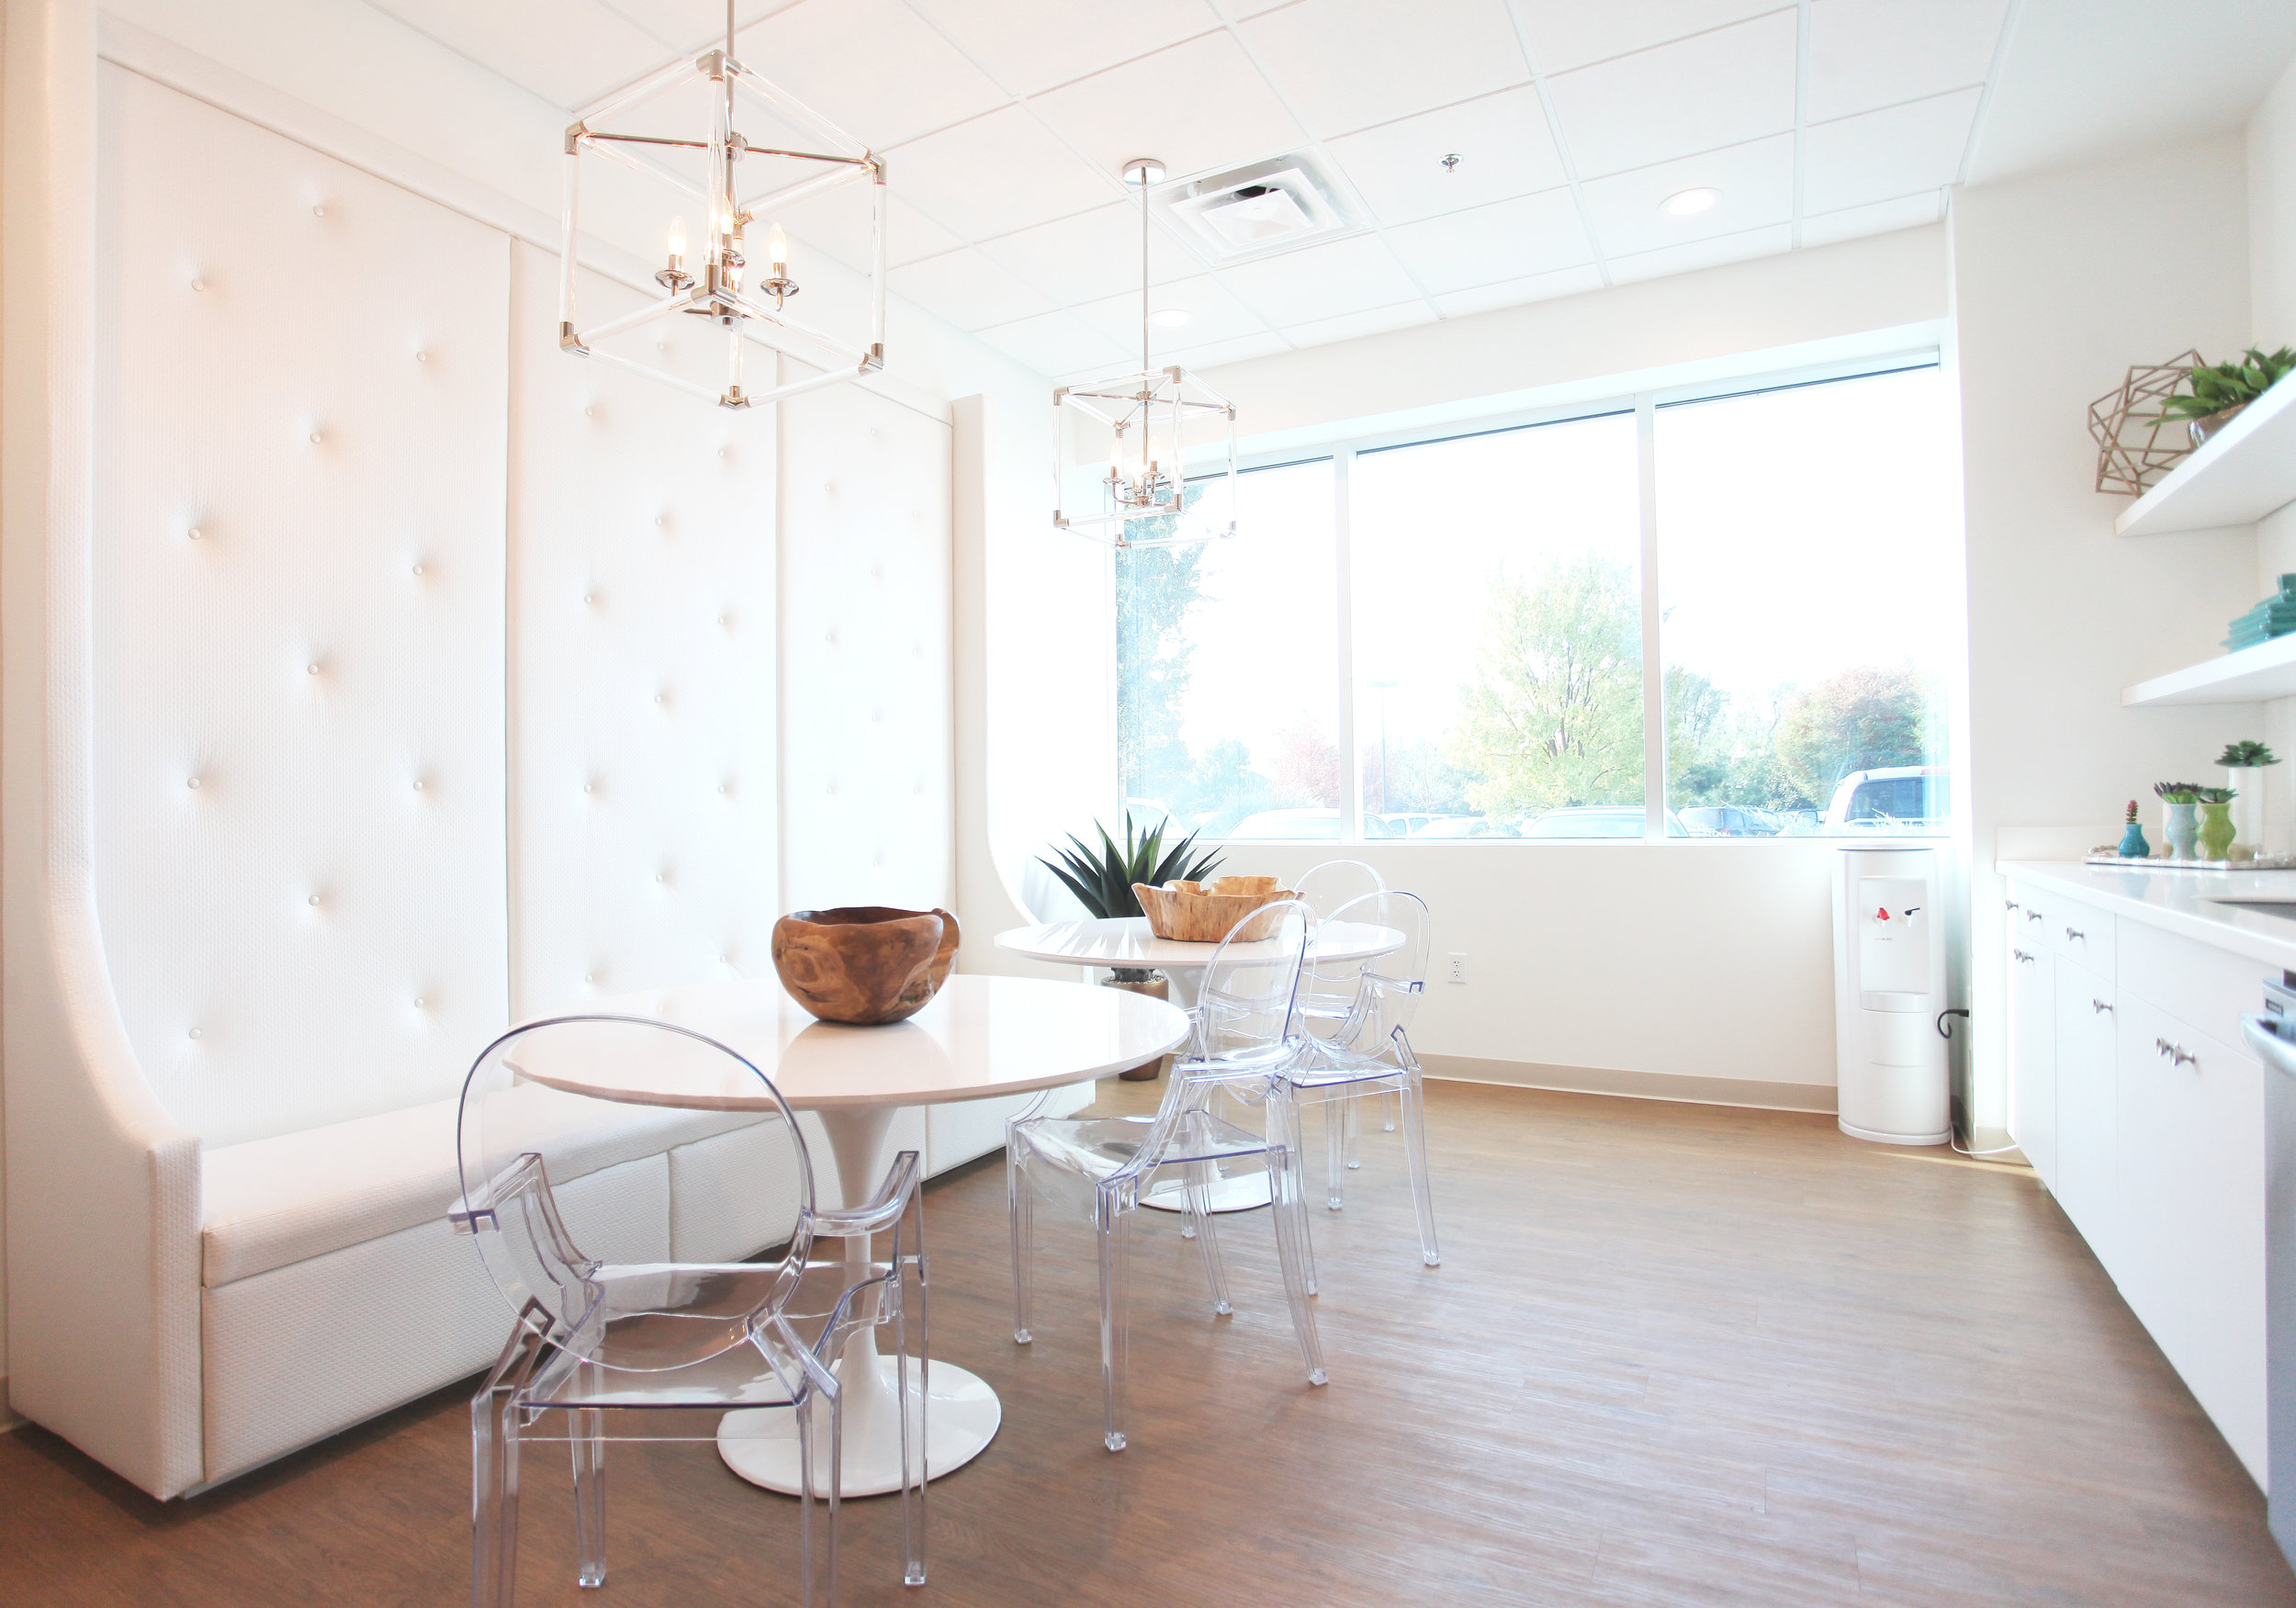 Create bright and airy photographs. // For DRS Inc. featured in The Voice Tribune